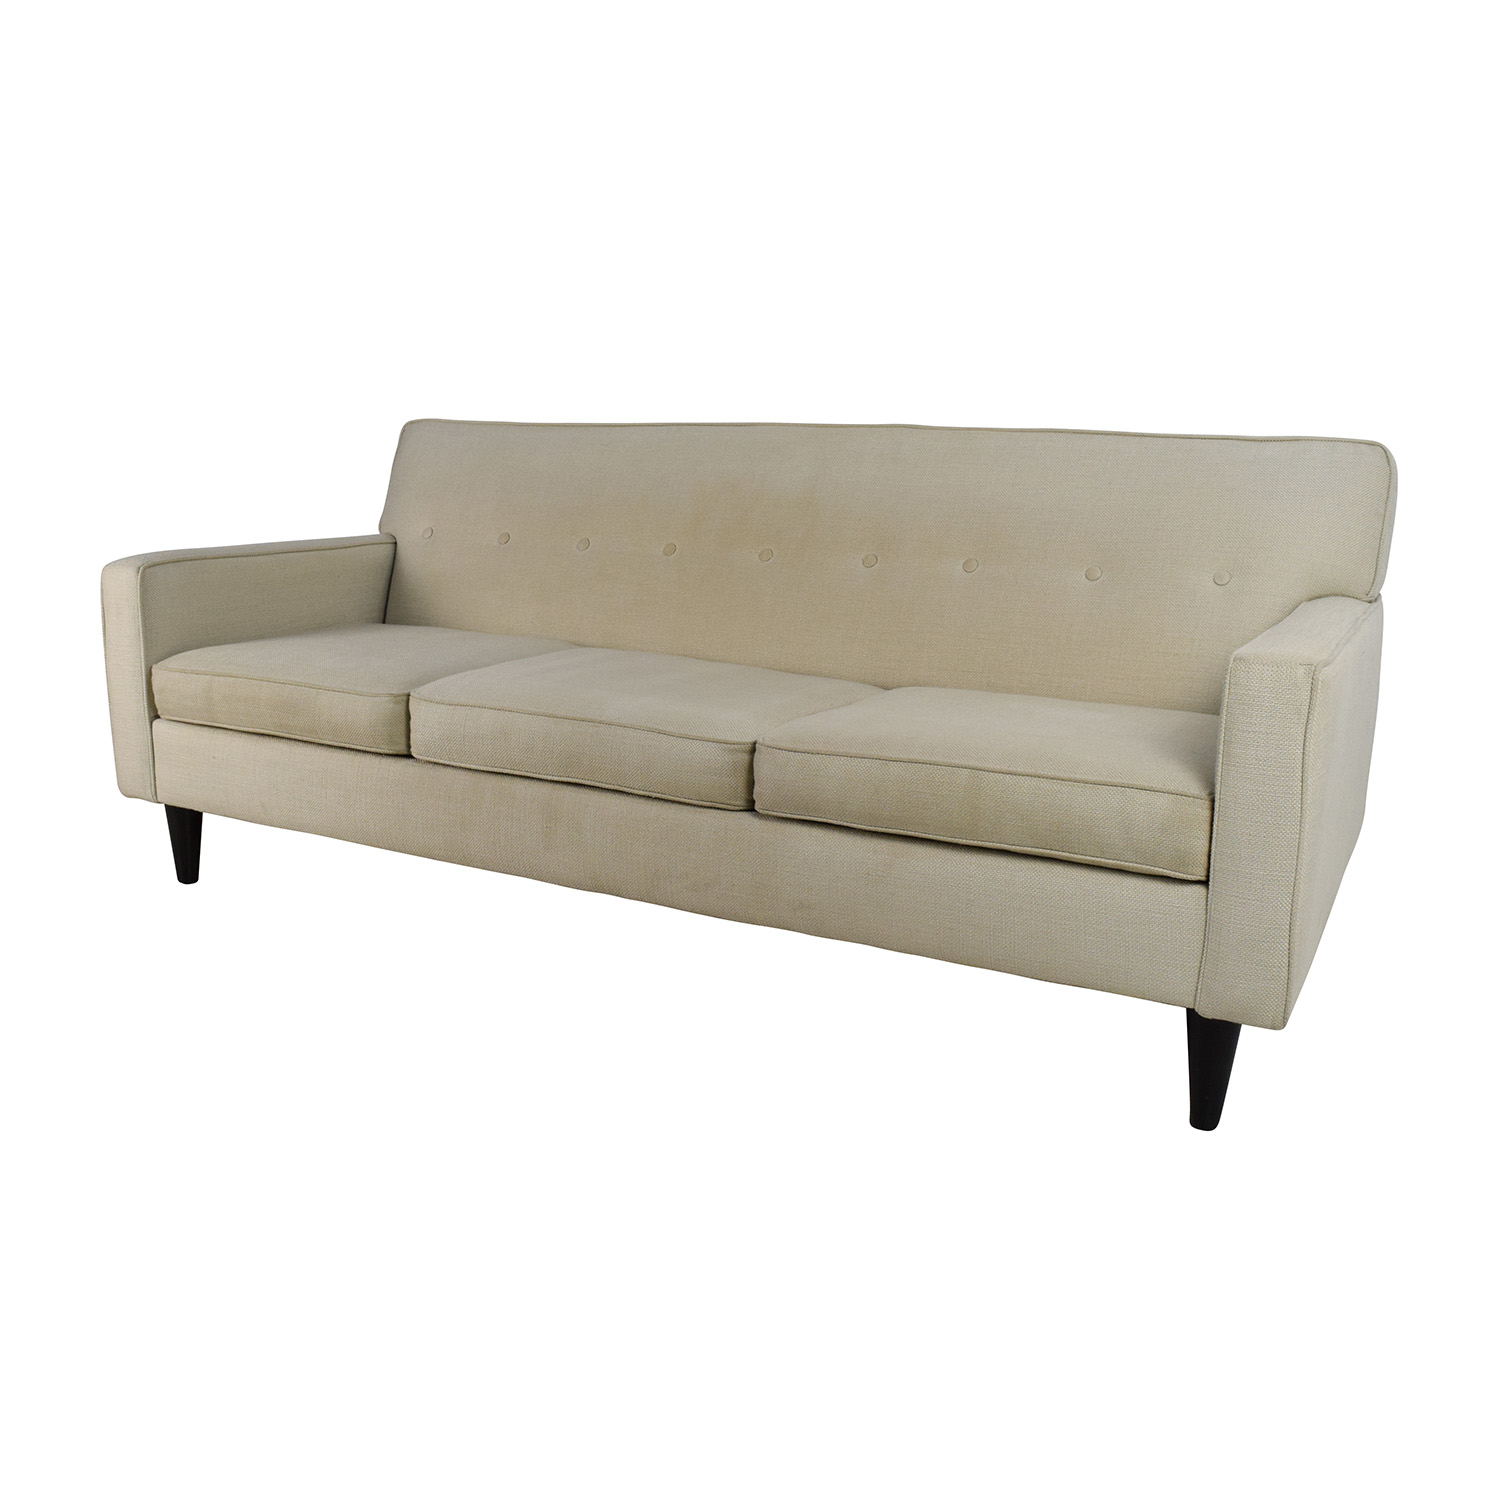 69 Off Max Home Furniture Max Home Mid Century Sofa Sofas